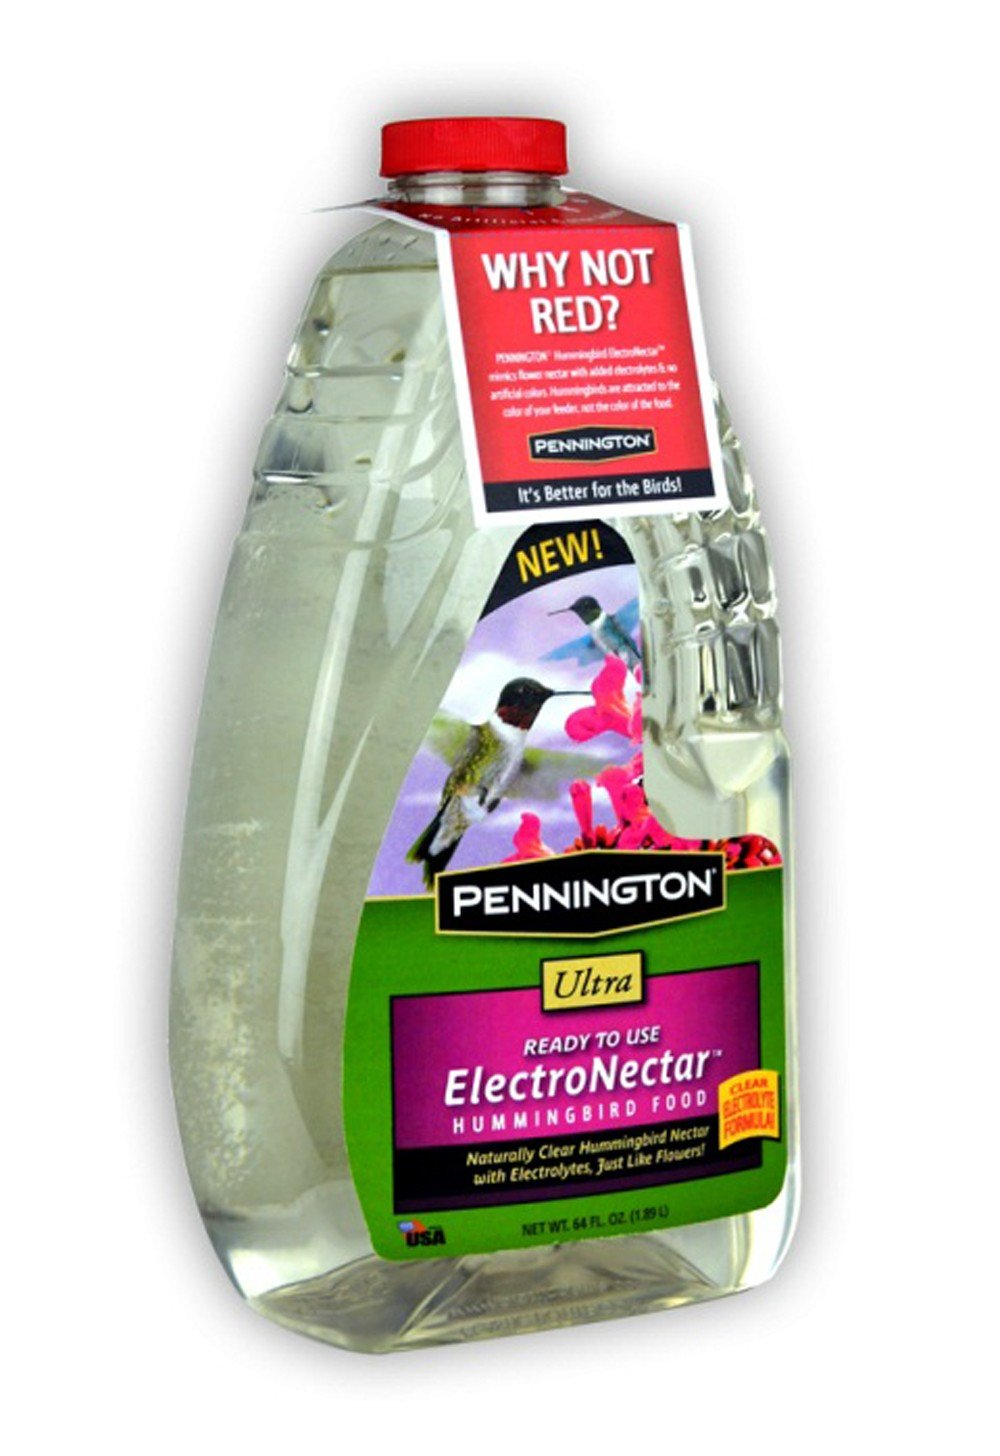 Pennington Electro Nectar Clear Hummingbird Food Ready To Use, 64 oz CENTRAL Garden & Pet 100510152